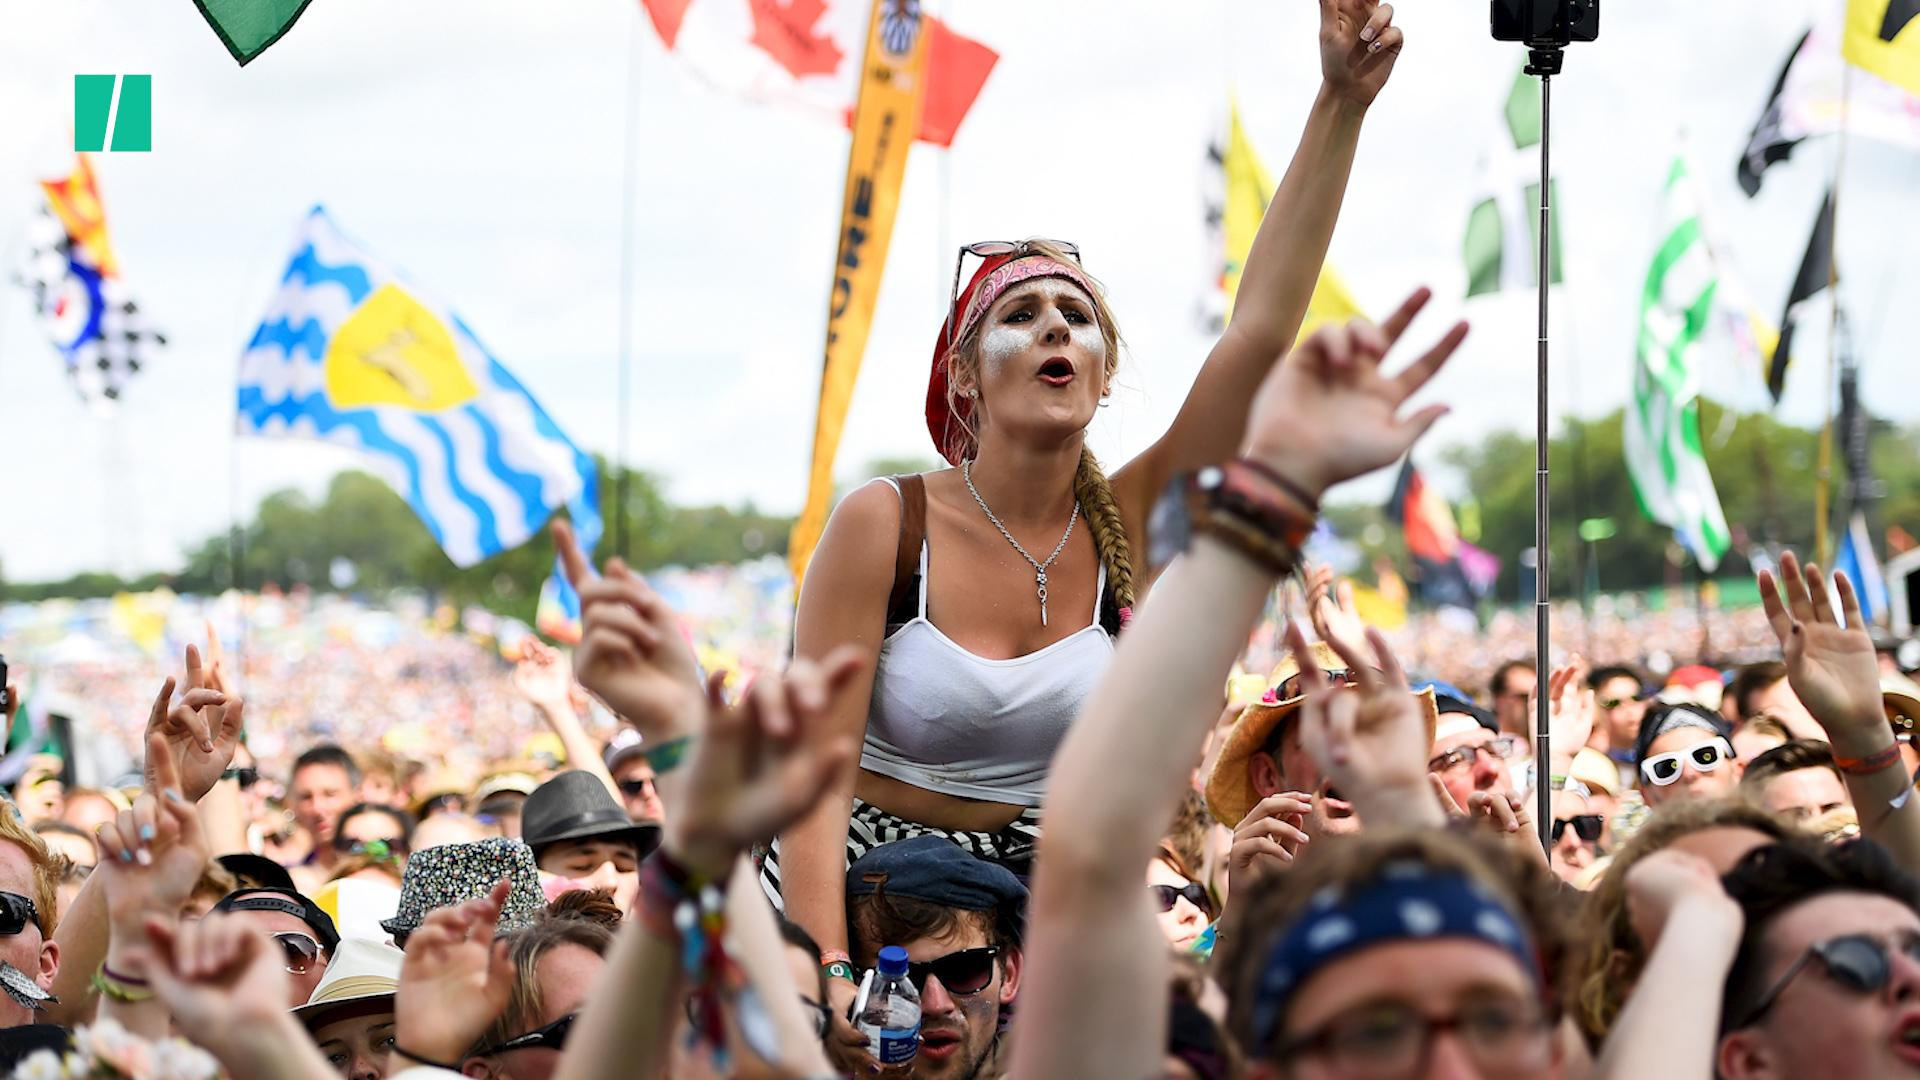 What To Expect From This Year's Glastonbury Festival